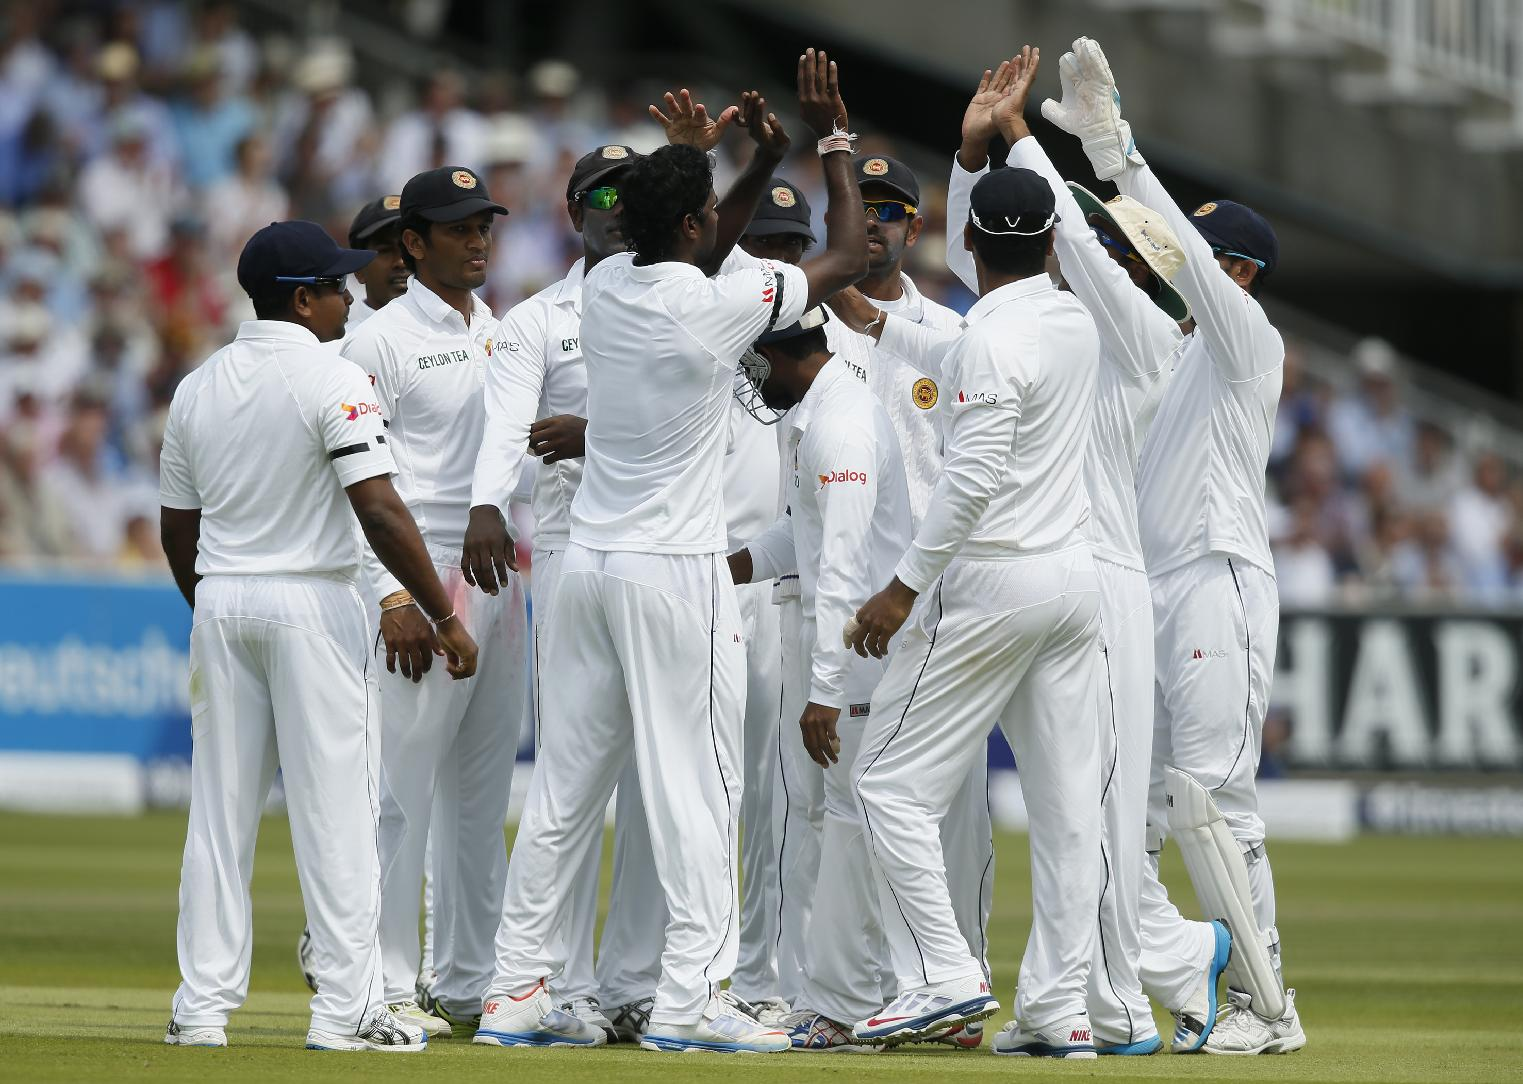 Sri Lanka's Kaushal Silva, at center, is congratulated by teammates after taking a catch to dismiss England's Matt Prior on the second day of the first test cricket match between England and Sri Lanka at Lord's cricket ground in London, Friday June 13, 2014